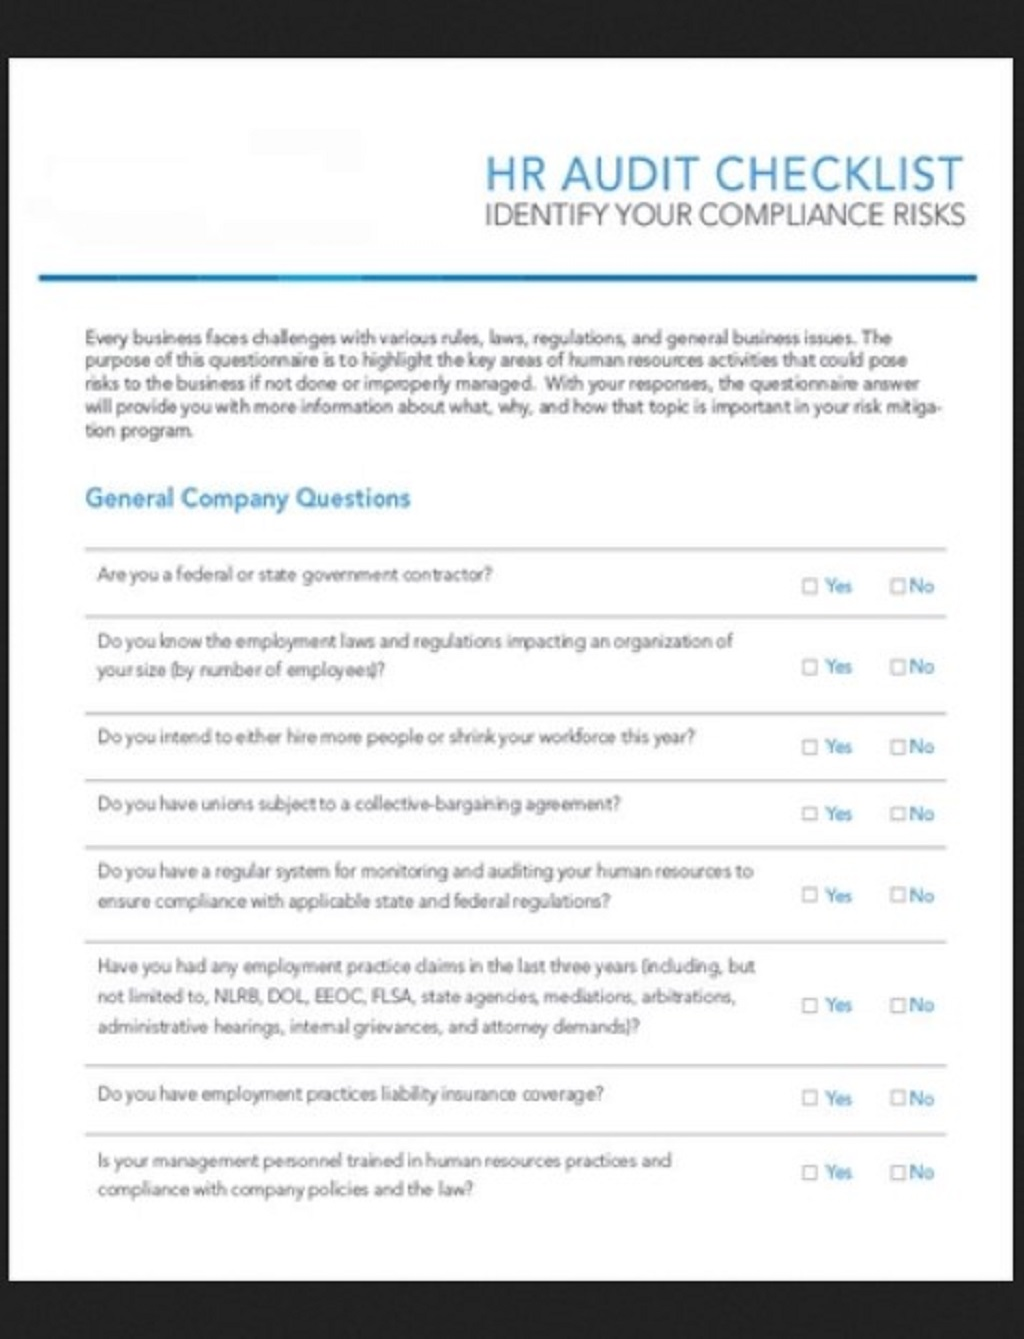 HR Audit Checklist Template Example Form Hr Daily For Strategies Startups Excel Documents  Examples Large